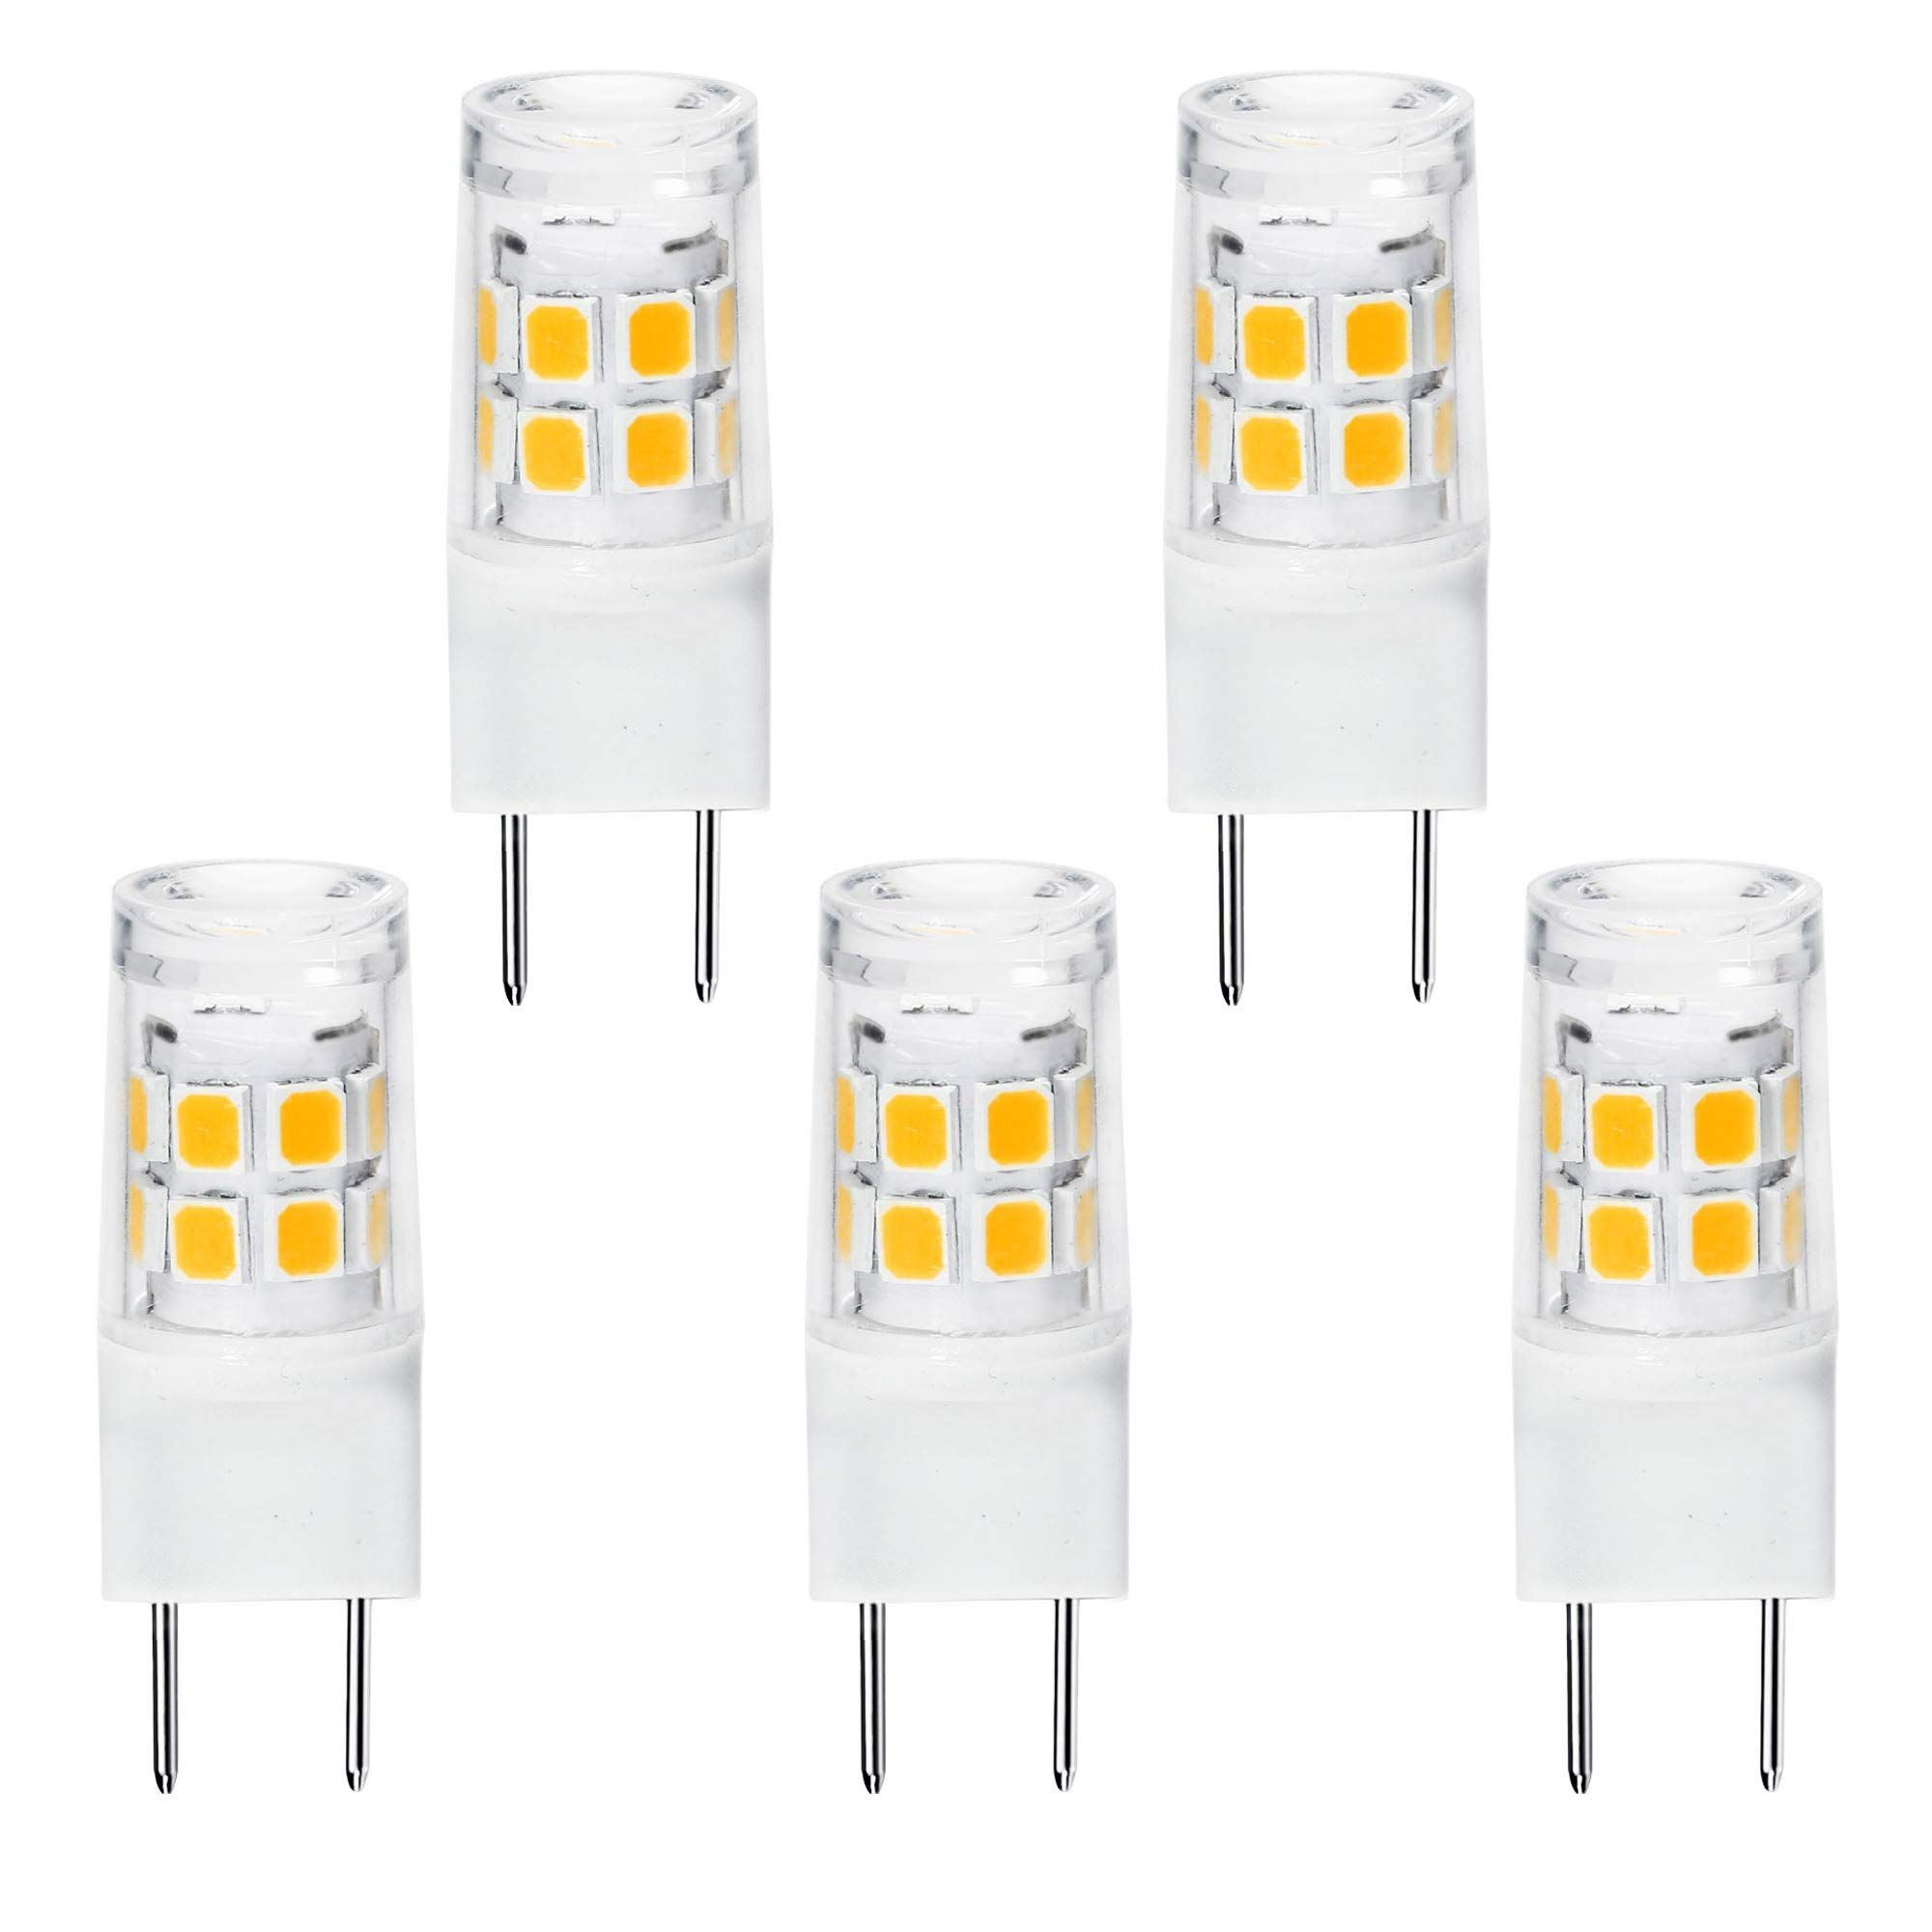 Led G8 Light Bulb G8 Gy8 6 Bipin Base Led Not Dimmable T4 G8 Base Bipin Xenon Jcd Type Led 120v 50w Halogen Replacement Bulb For Under Co Light Bulb Bulb Light